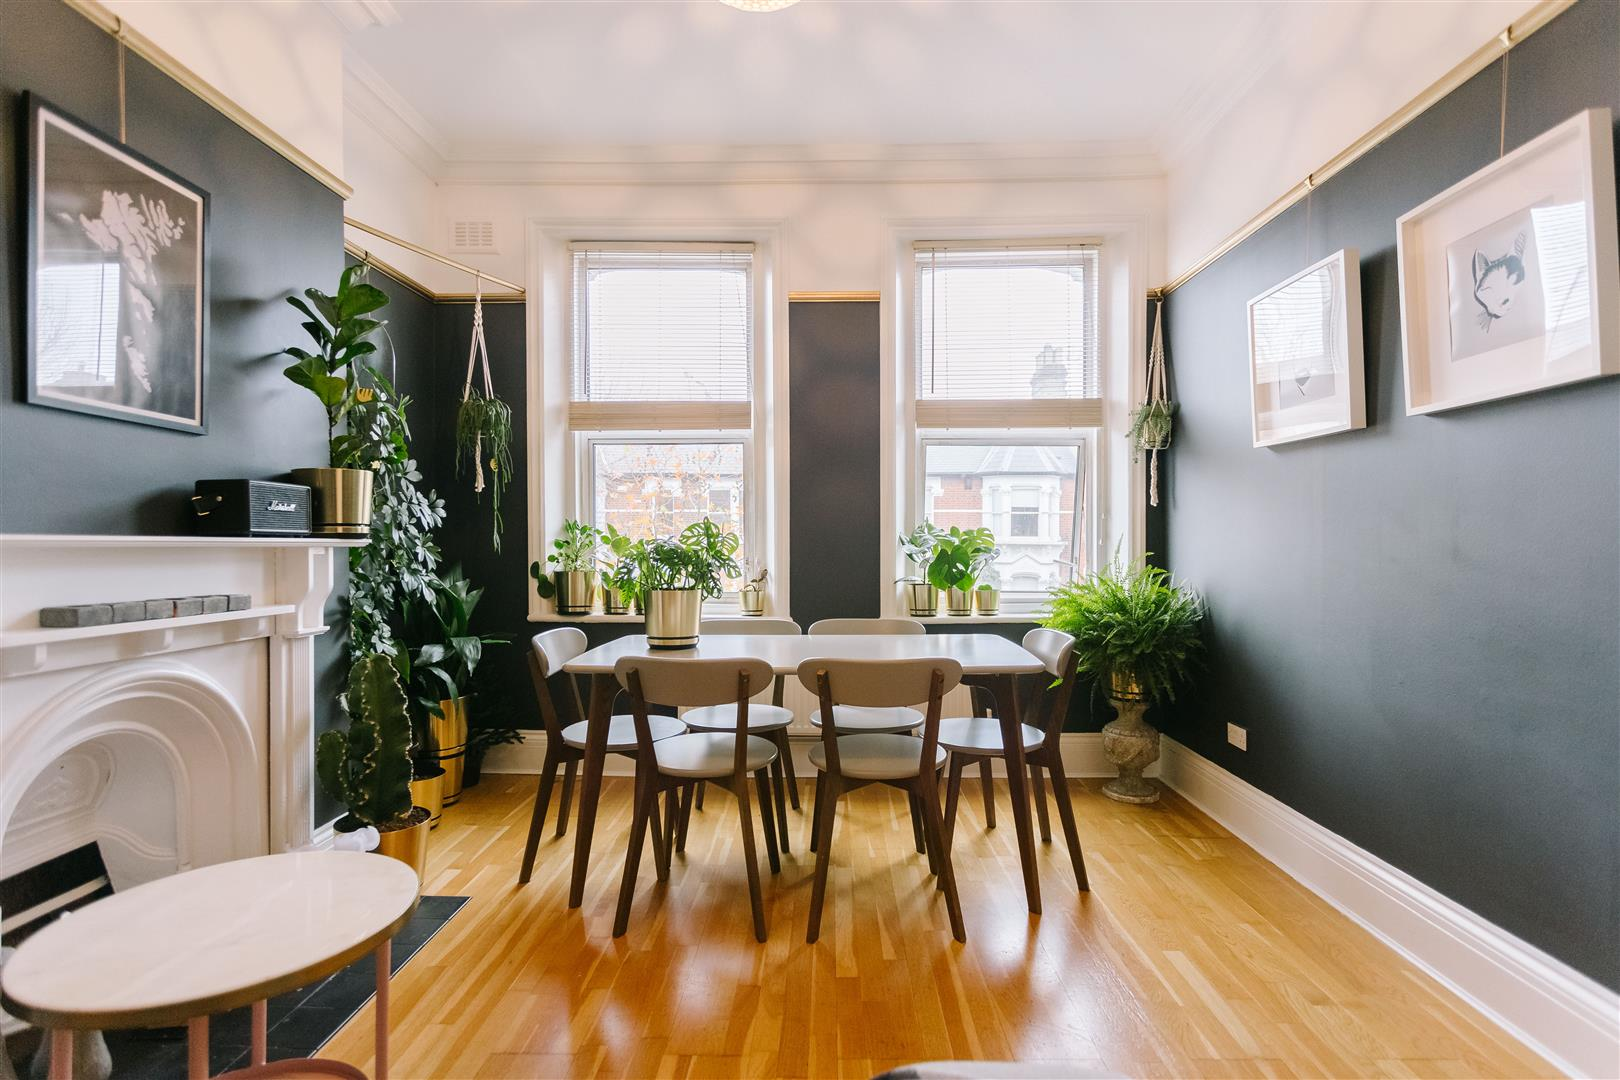 A Picture of a immaculate dinning room immaculately furnished, natural wooden floors and a selection of in door plants displayed to enhance the room.